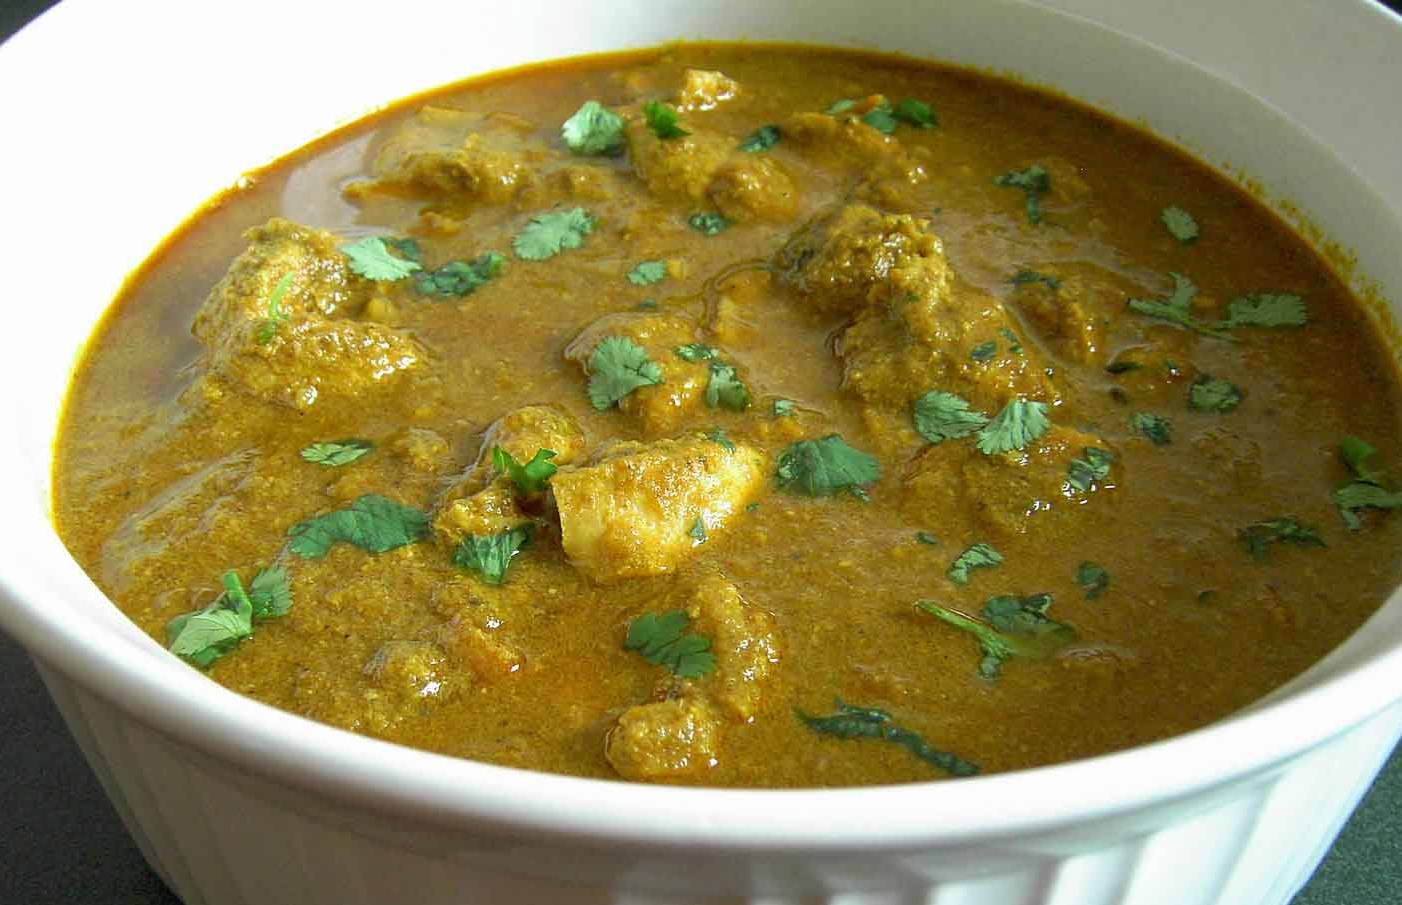 Sumptuous Bites Curry/Curried Chicken